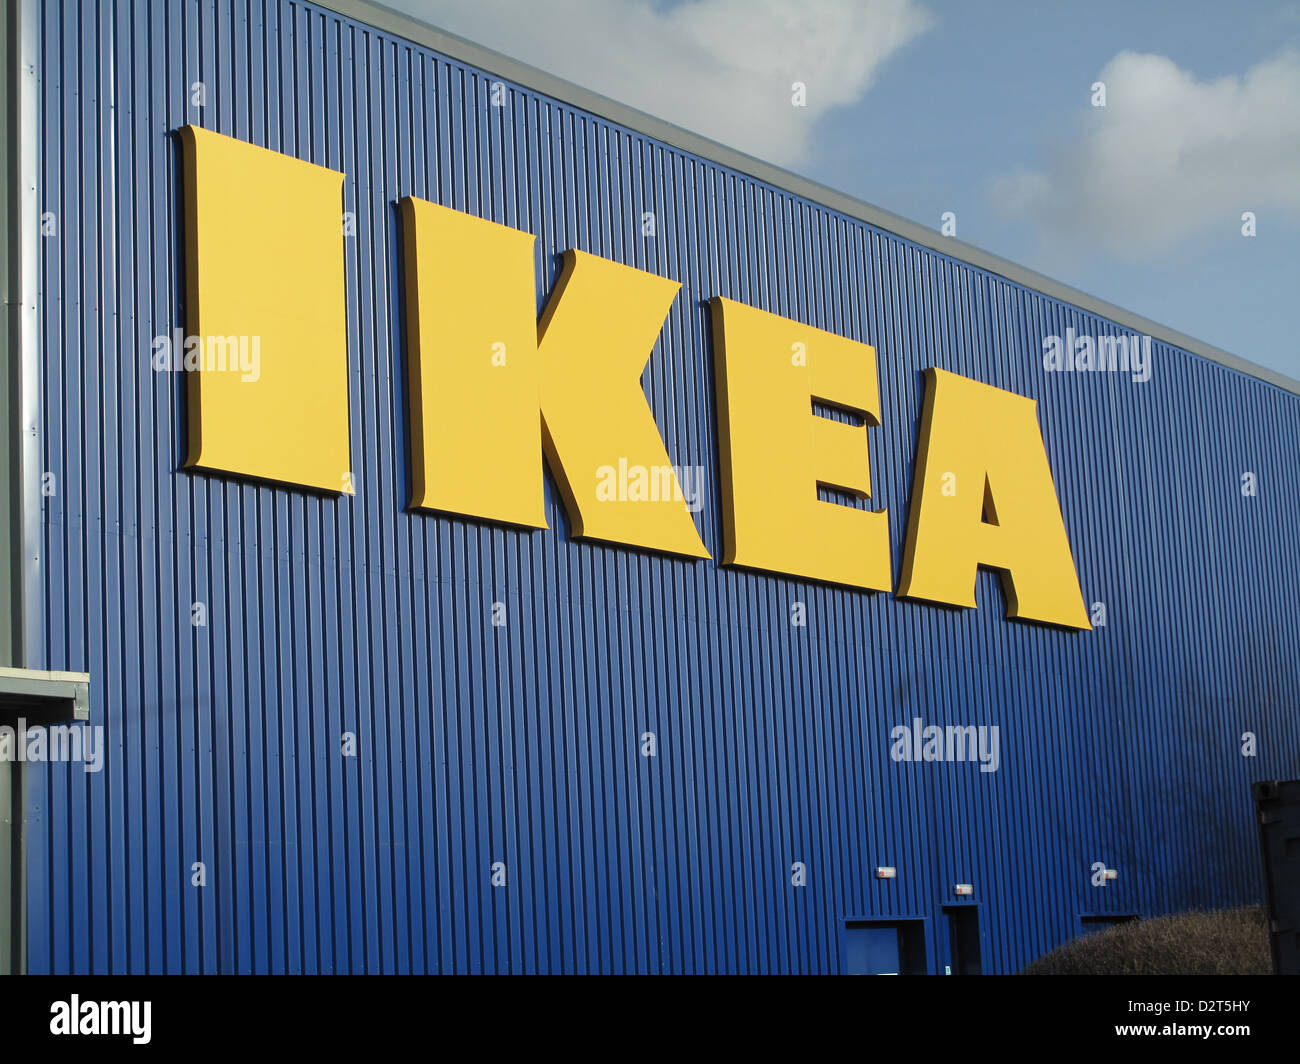 ikea möbelhaus stock photos & ikea möbelhaus stock images - alamy